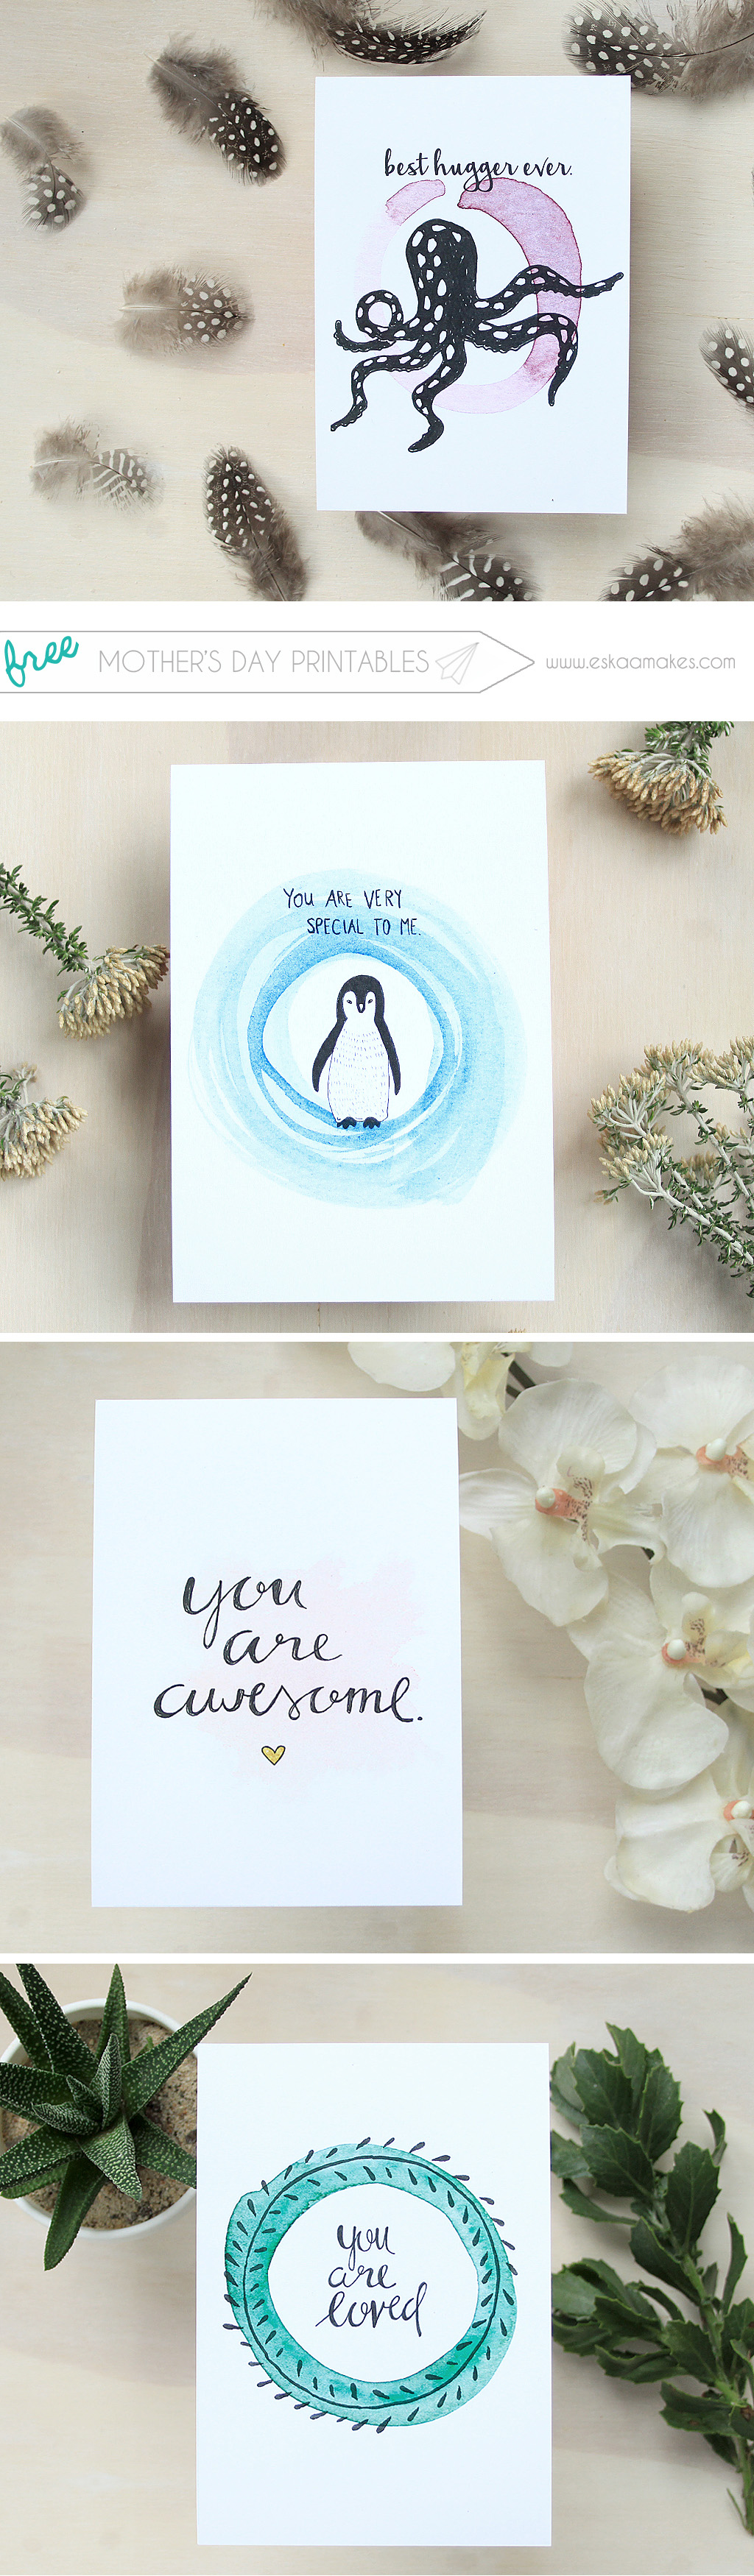 mothers day cards pinterest